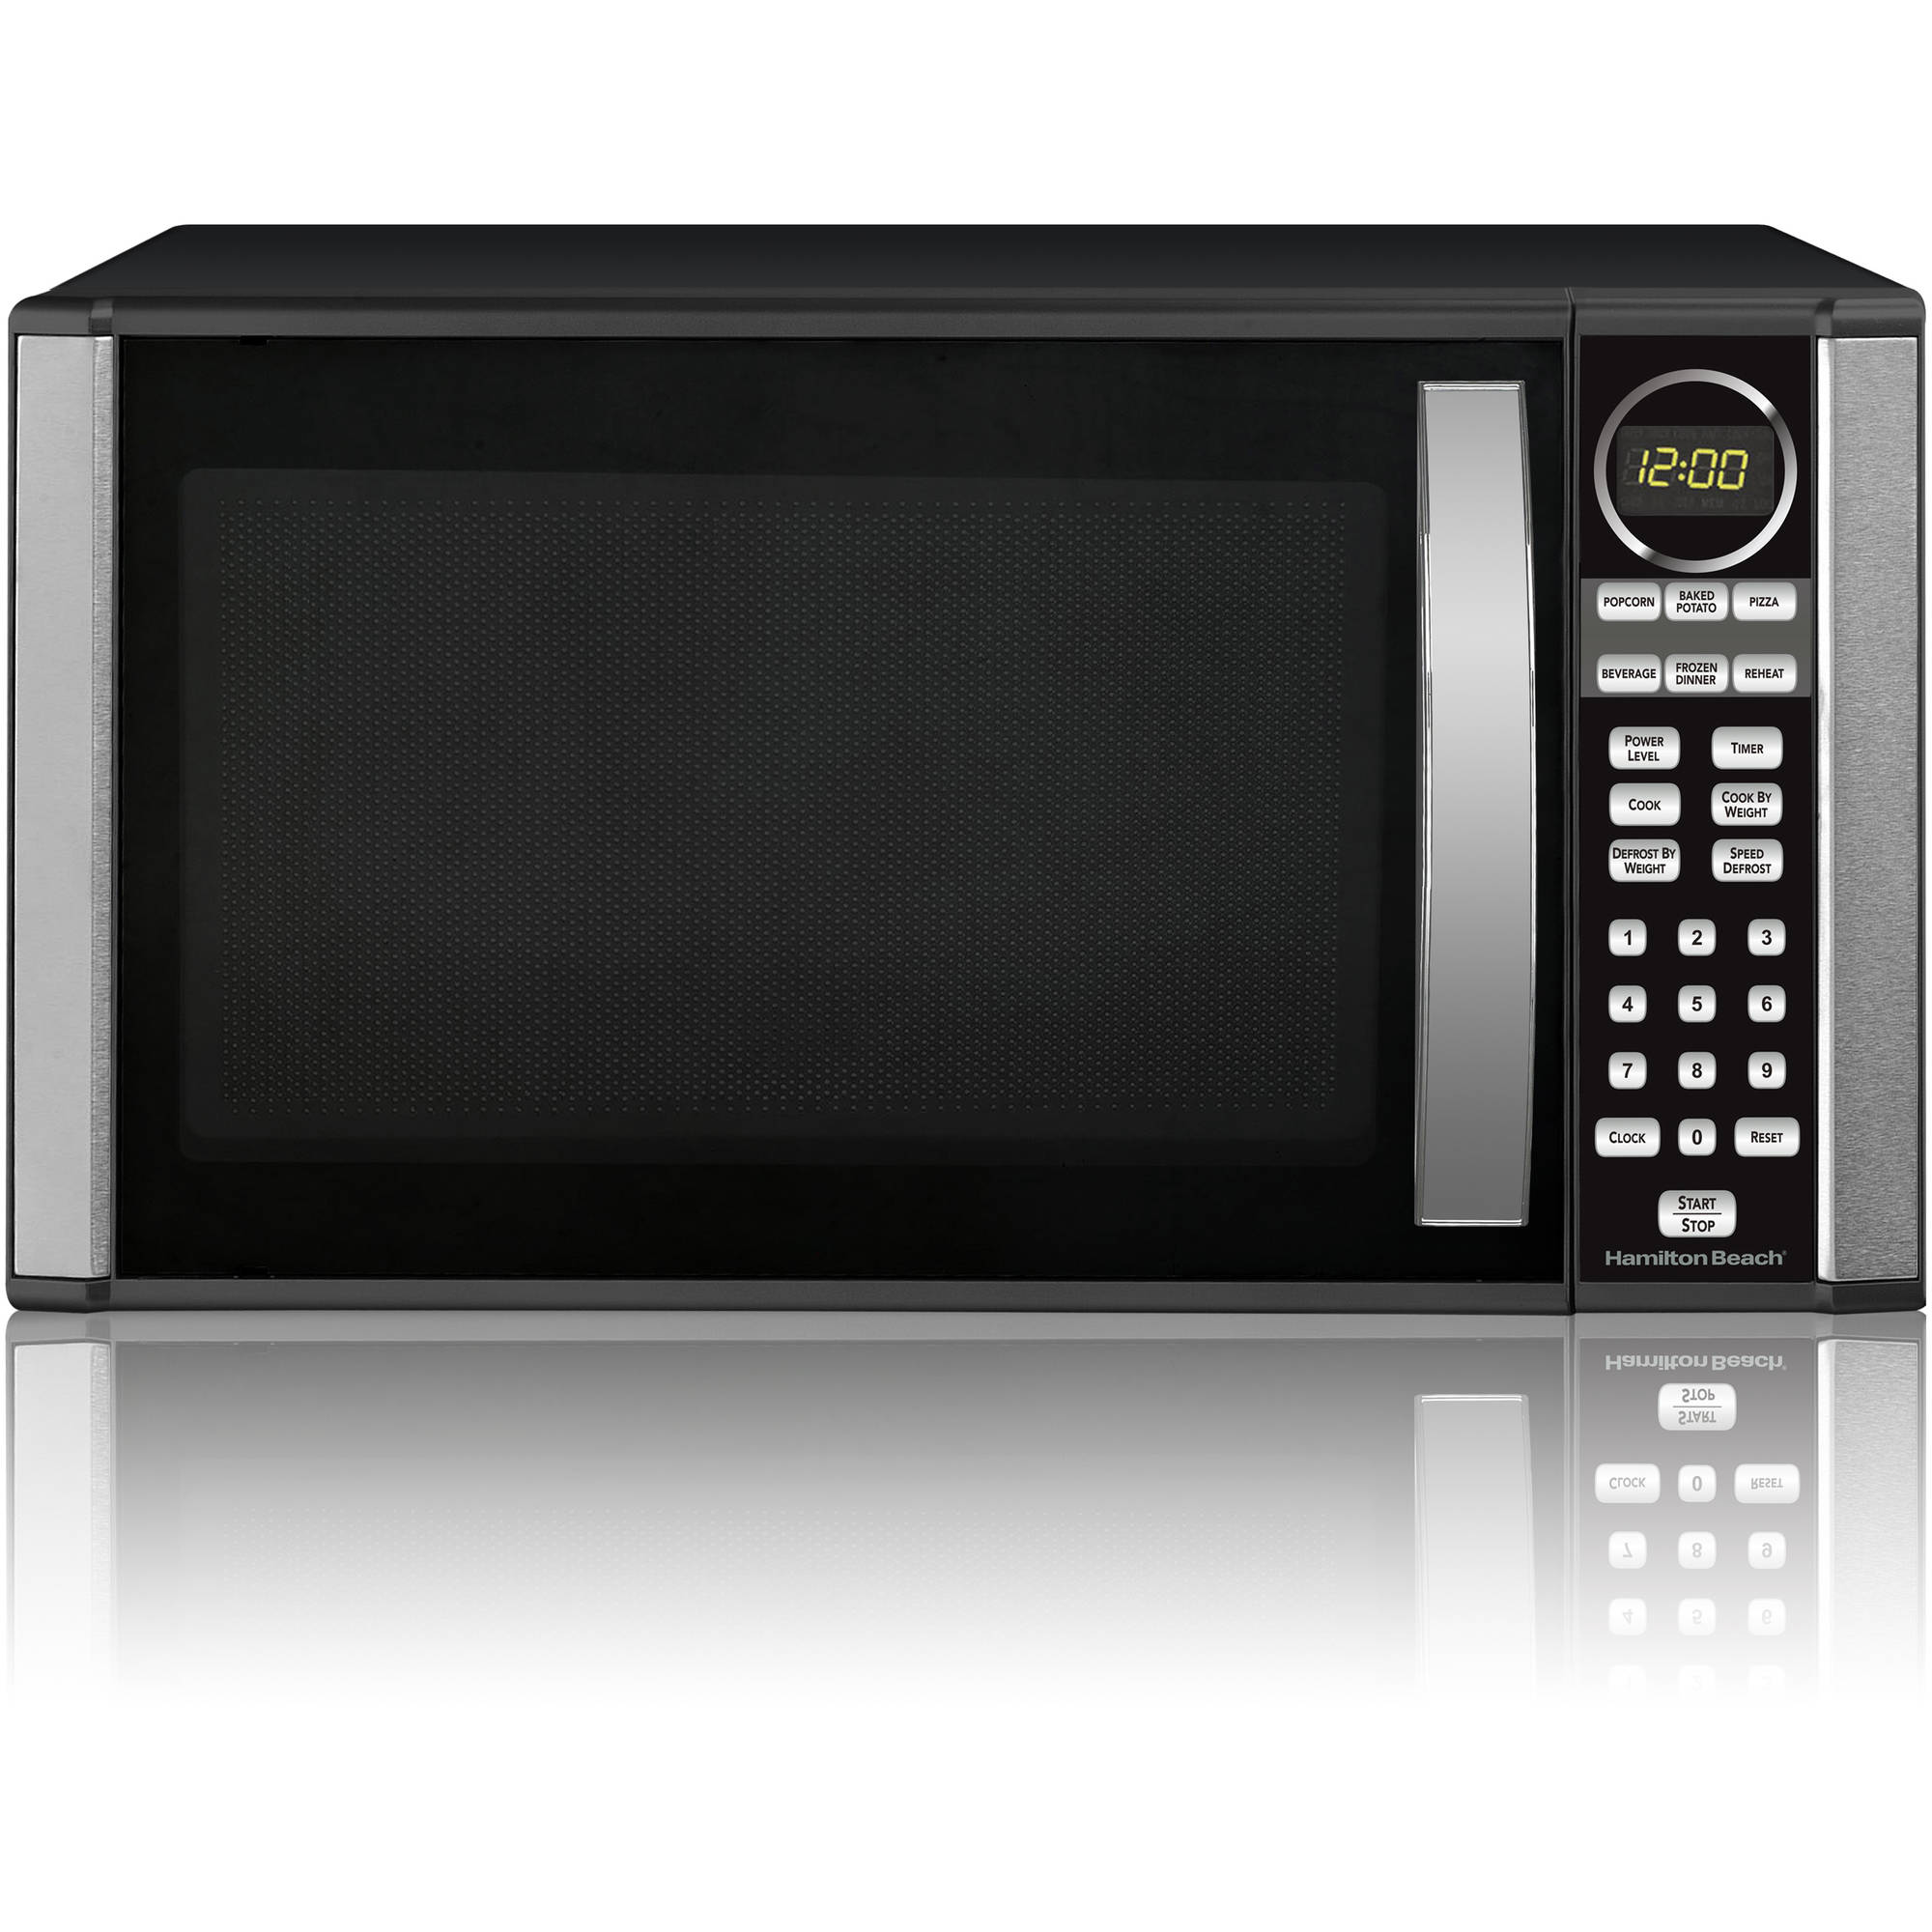 Hamilton Beach Microwave Oven ONLY $45.70 at Walmart (Reg $75)